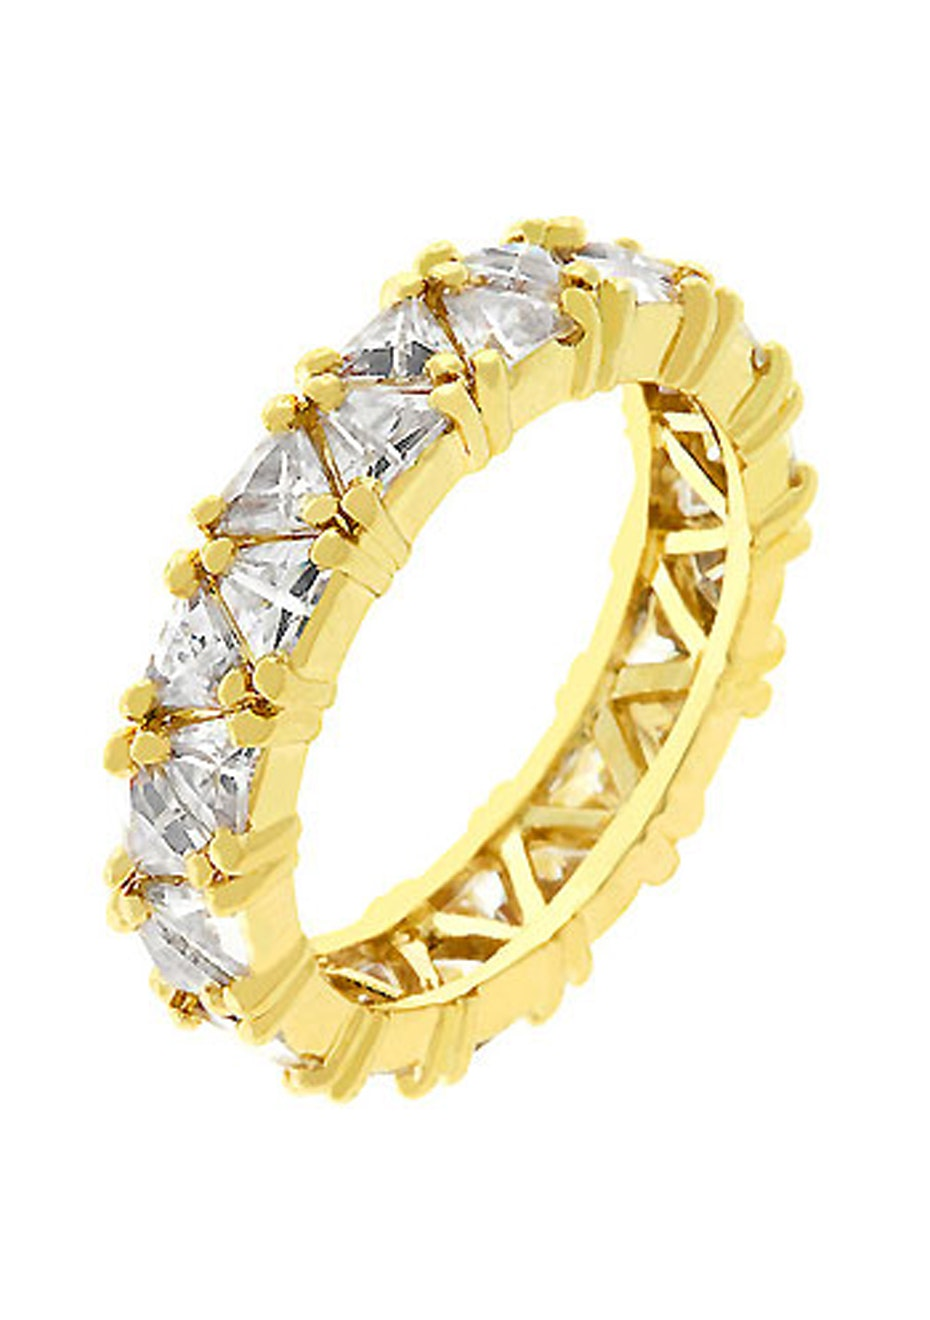 ZigZag Exquisite Eternity Band 14k Gold